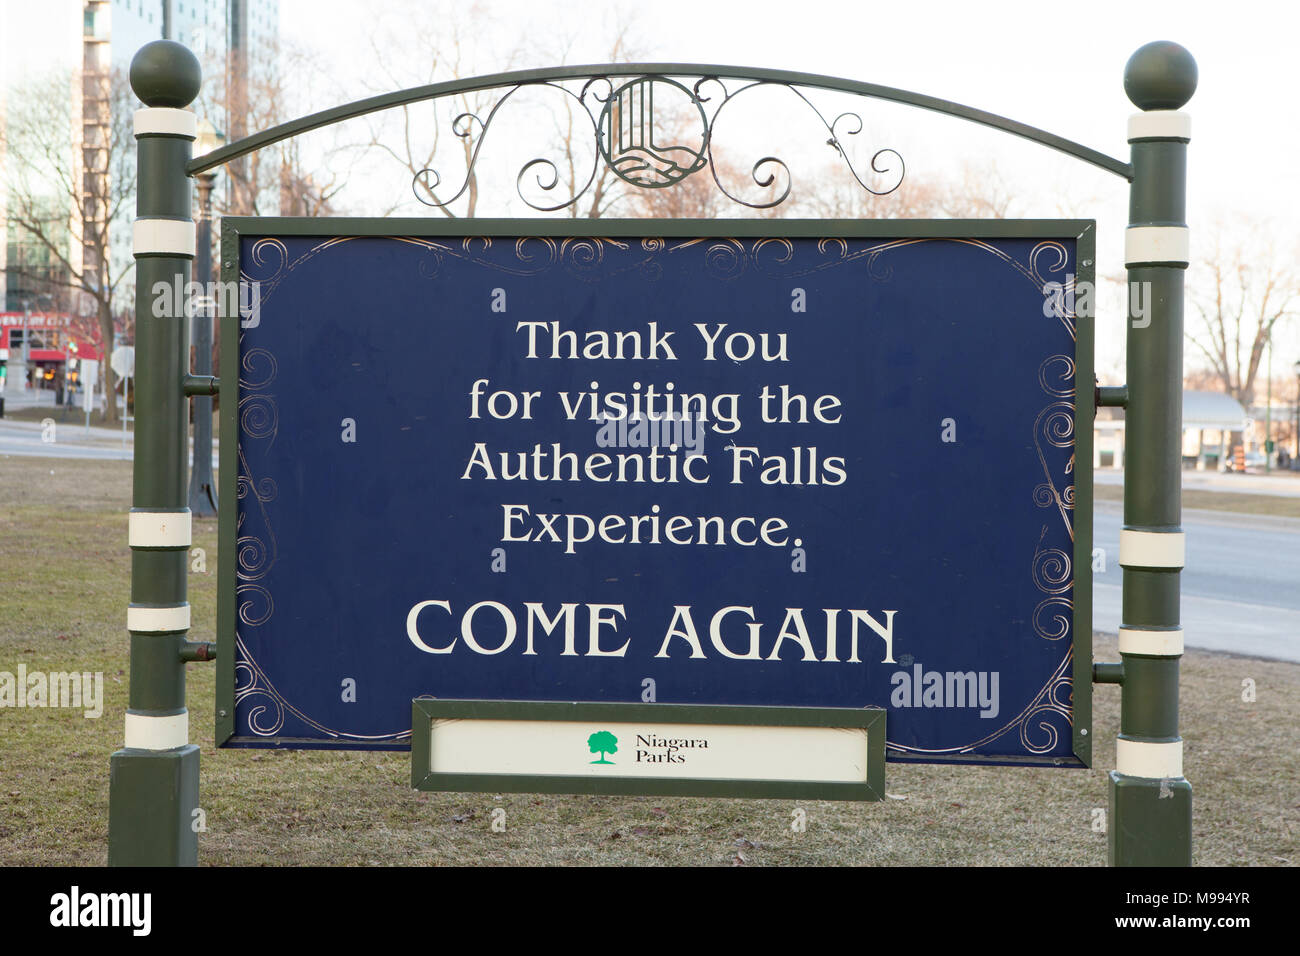 'thank you for visiting the authentic falls experience' message board by Niagara Parks administration - Stock Image